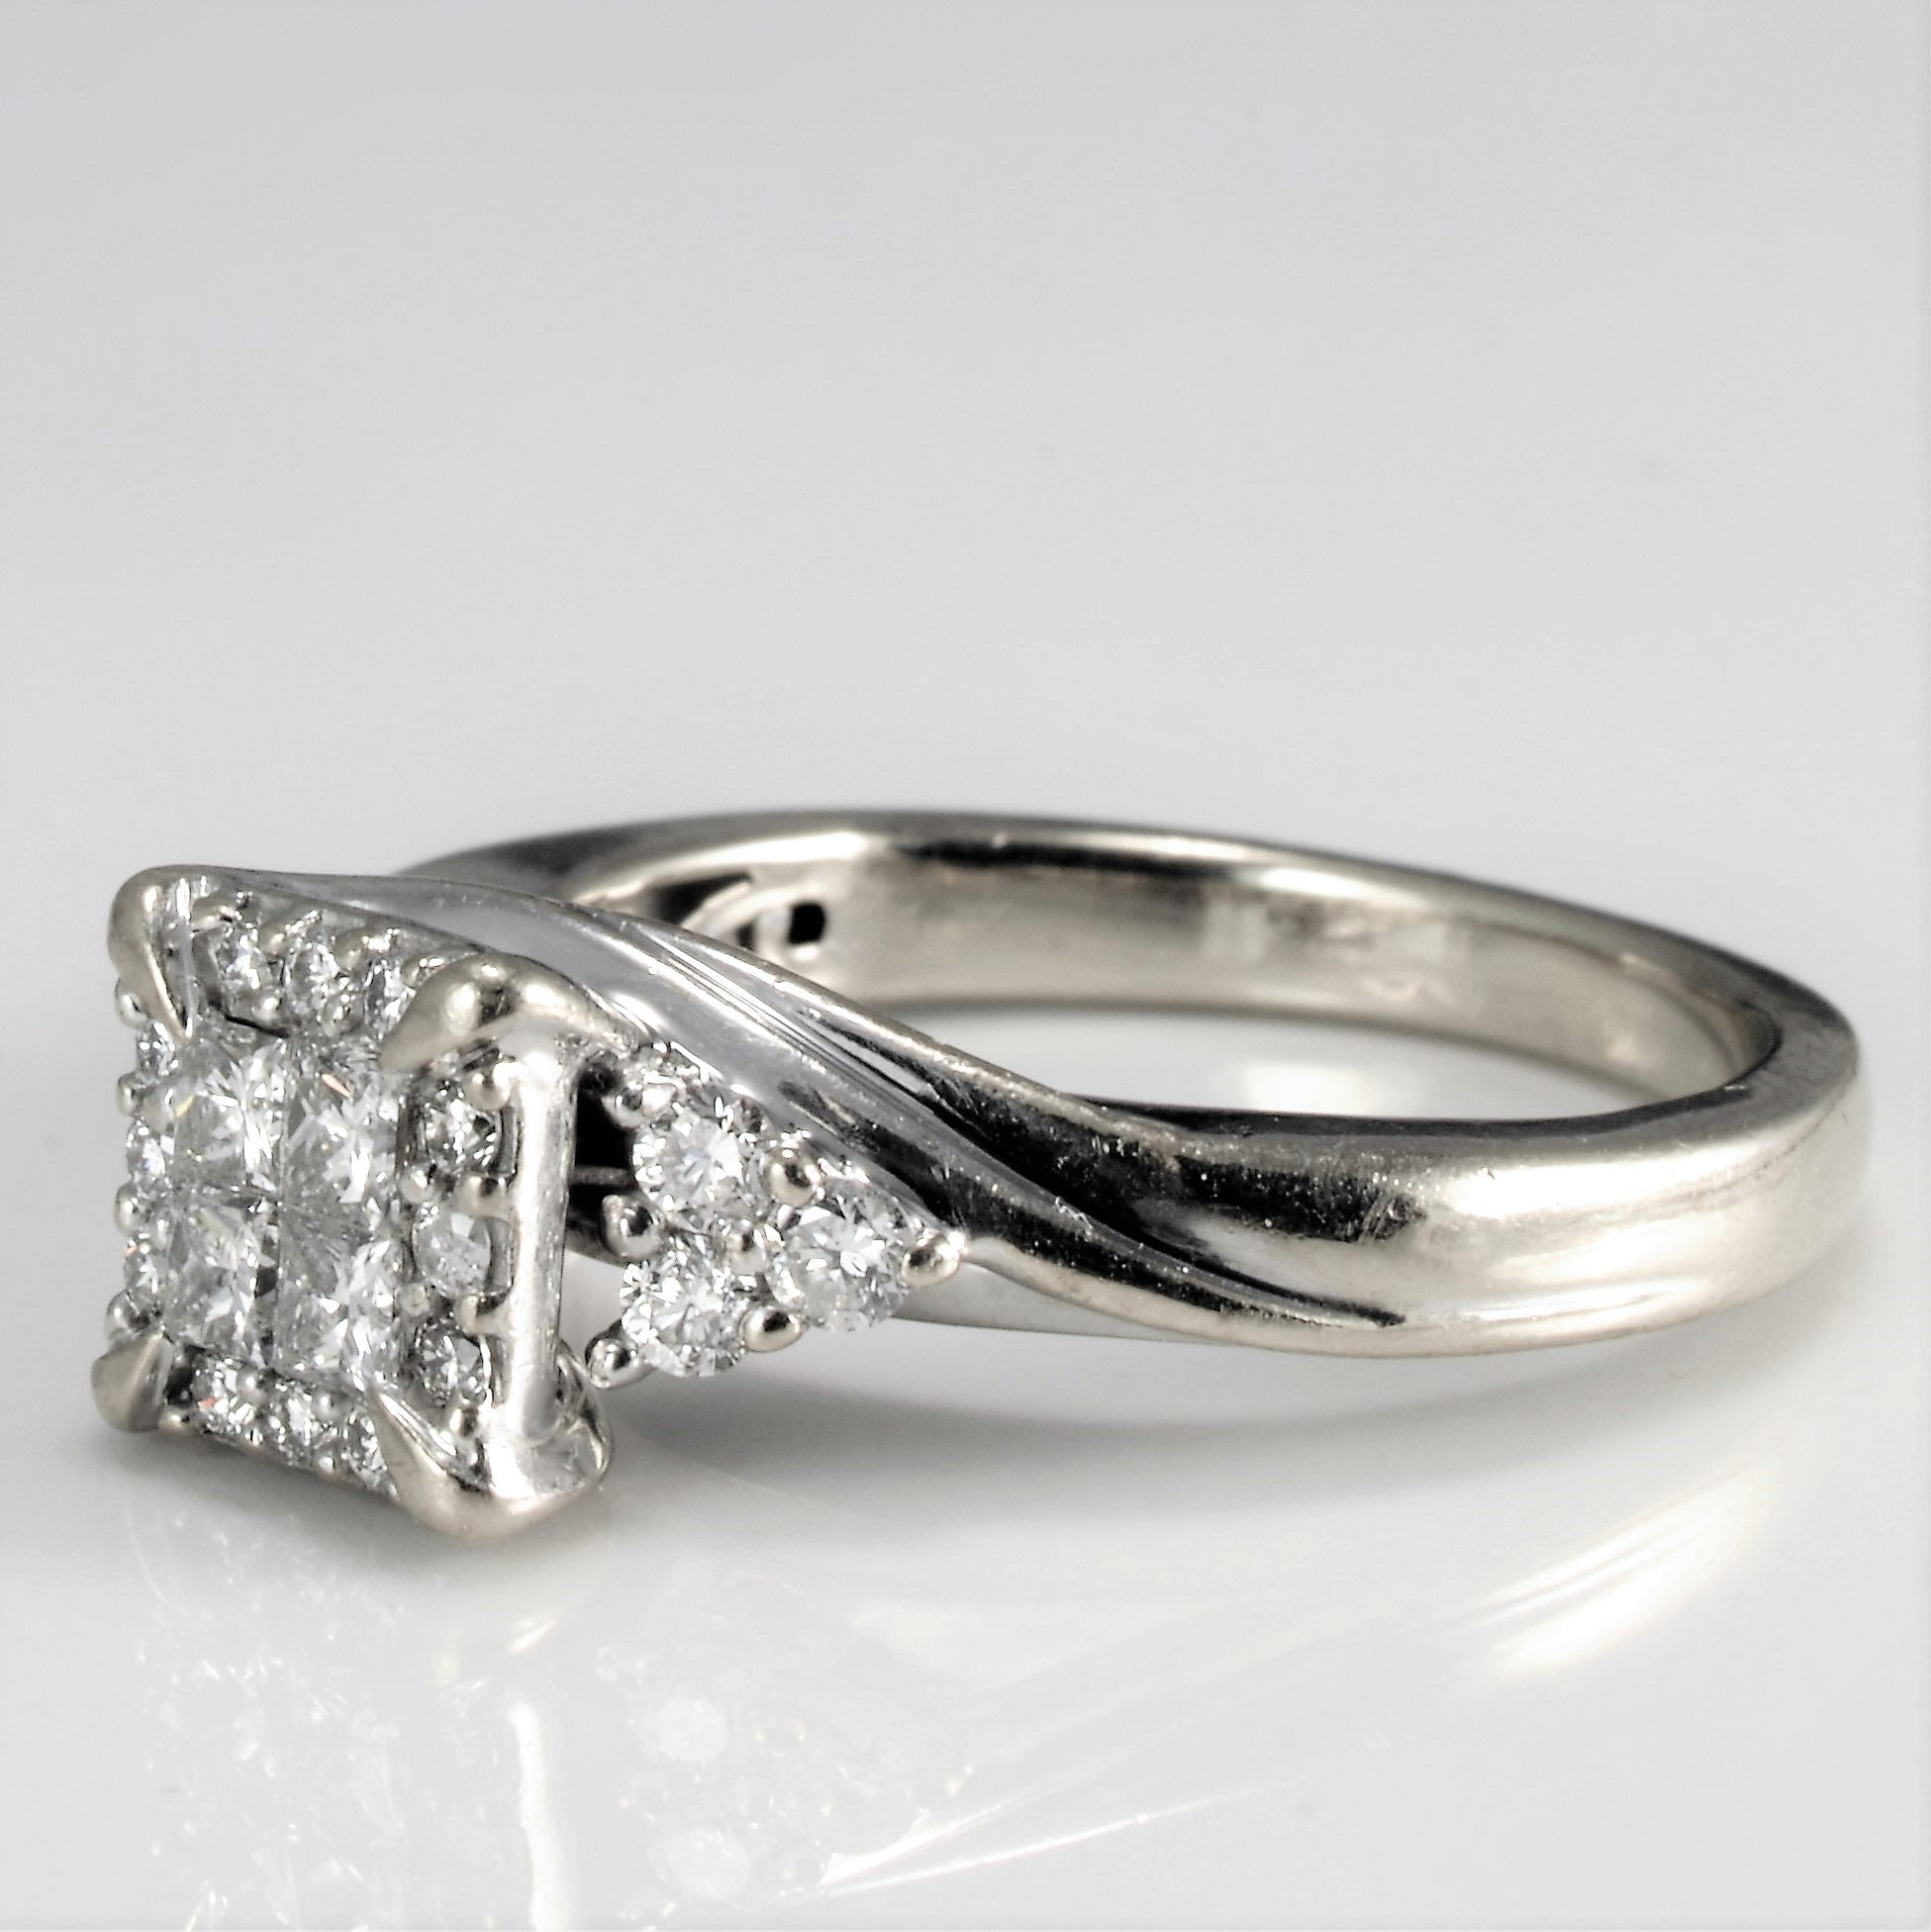 High Set Cluster Diamond Engagement Ring | 0.46 ctw , SZ 5.75 |